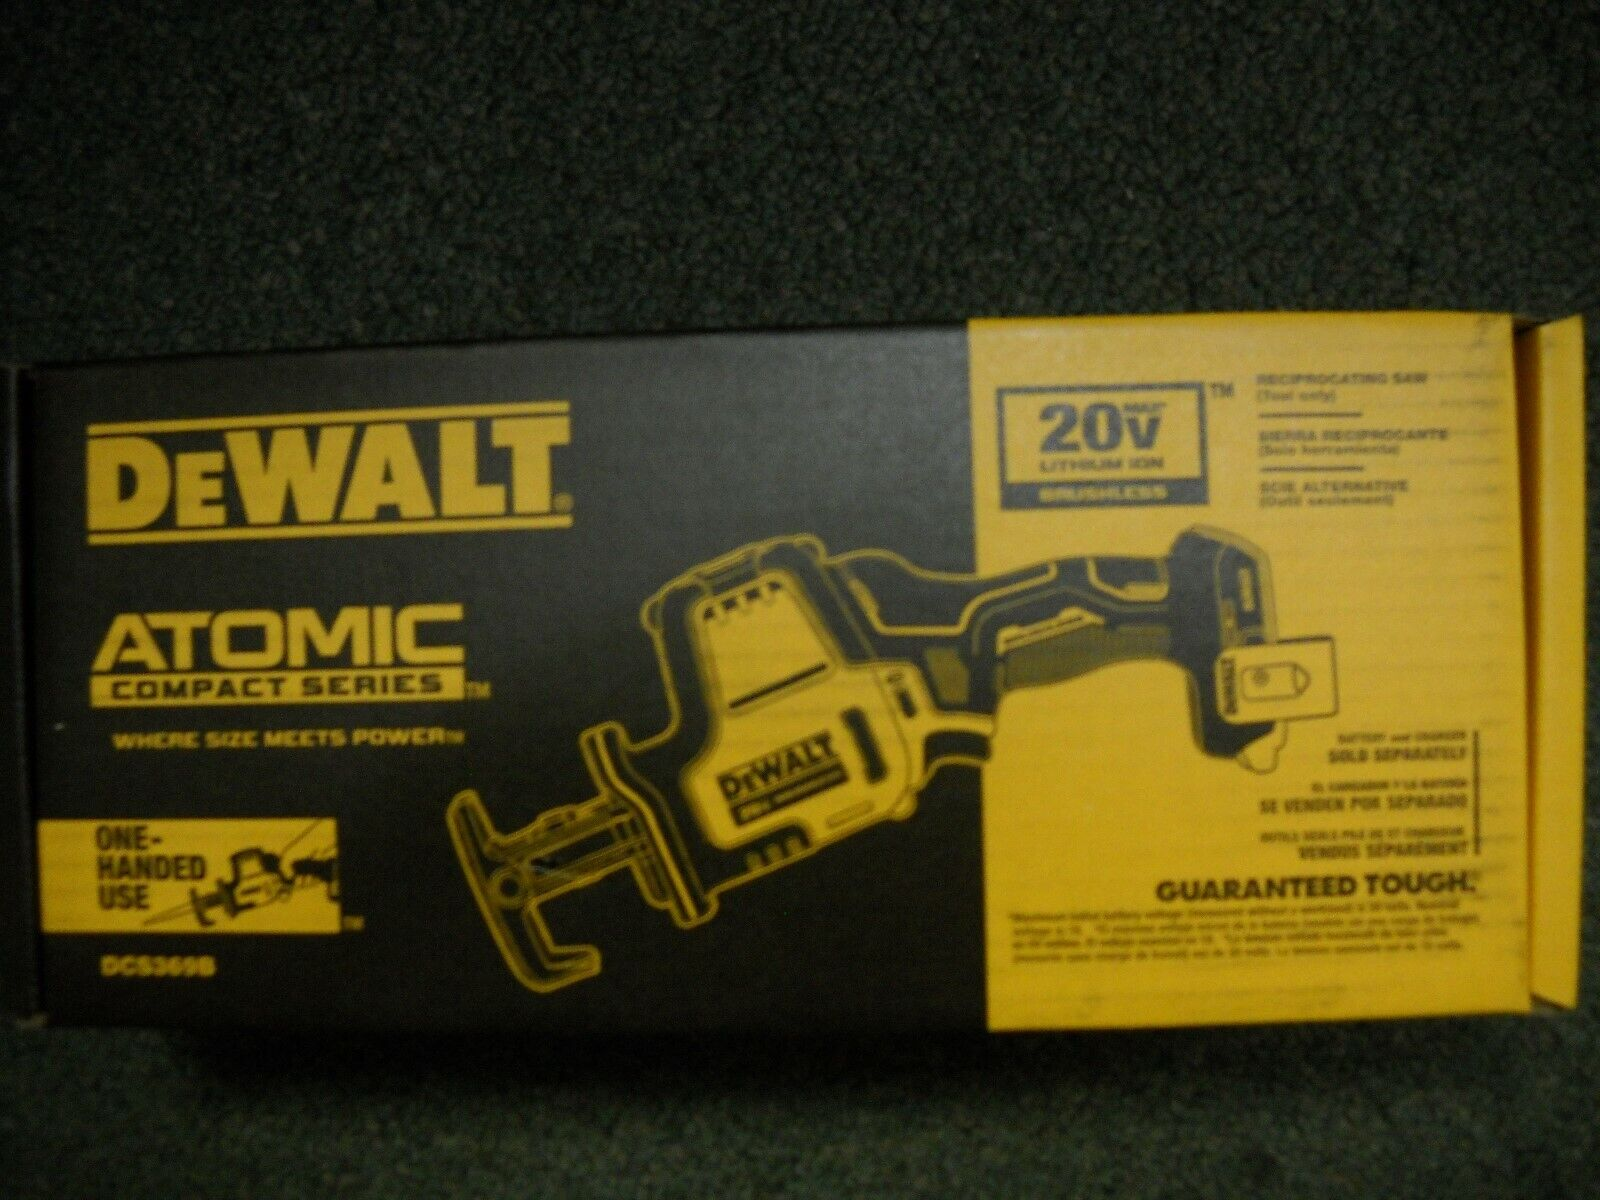 DeWalt DCS369B ATOMIC 20V MAX Li-Ion Reciprocating Saw Brush